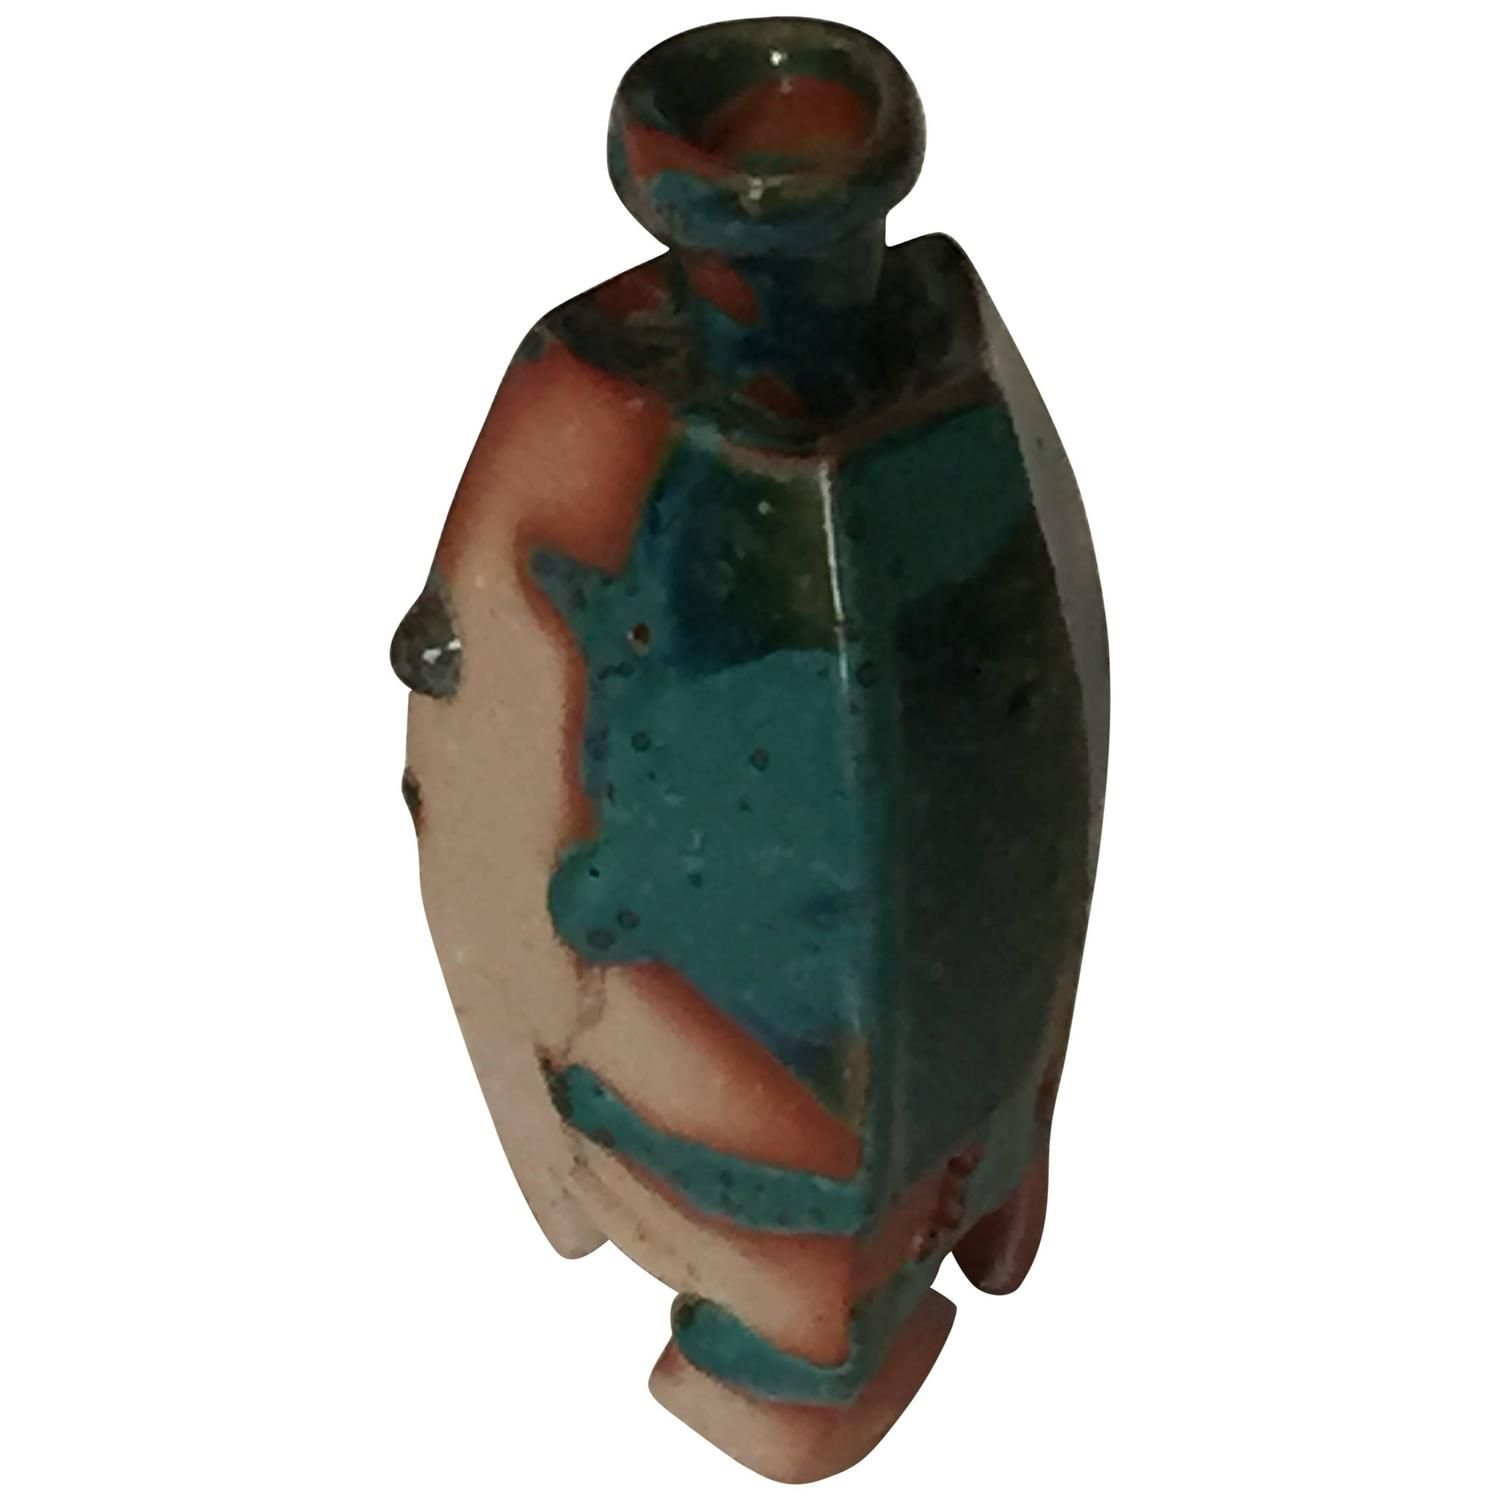 Contemporary Sake Bottle by Kakurezaki Ryuichi   This Bizen tokkuri sake flask is characterized by the flow of green glaze over the red and natural clay body. Four sided and standing on three legs.